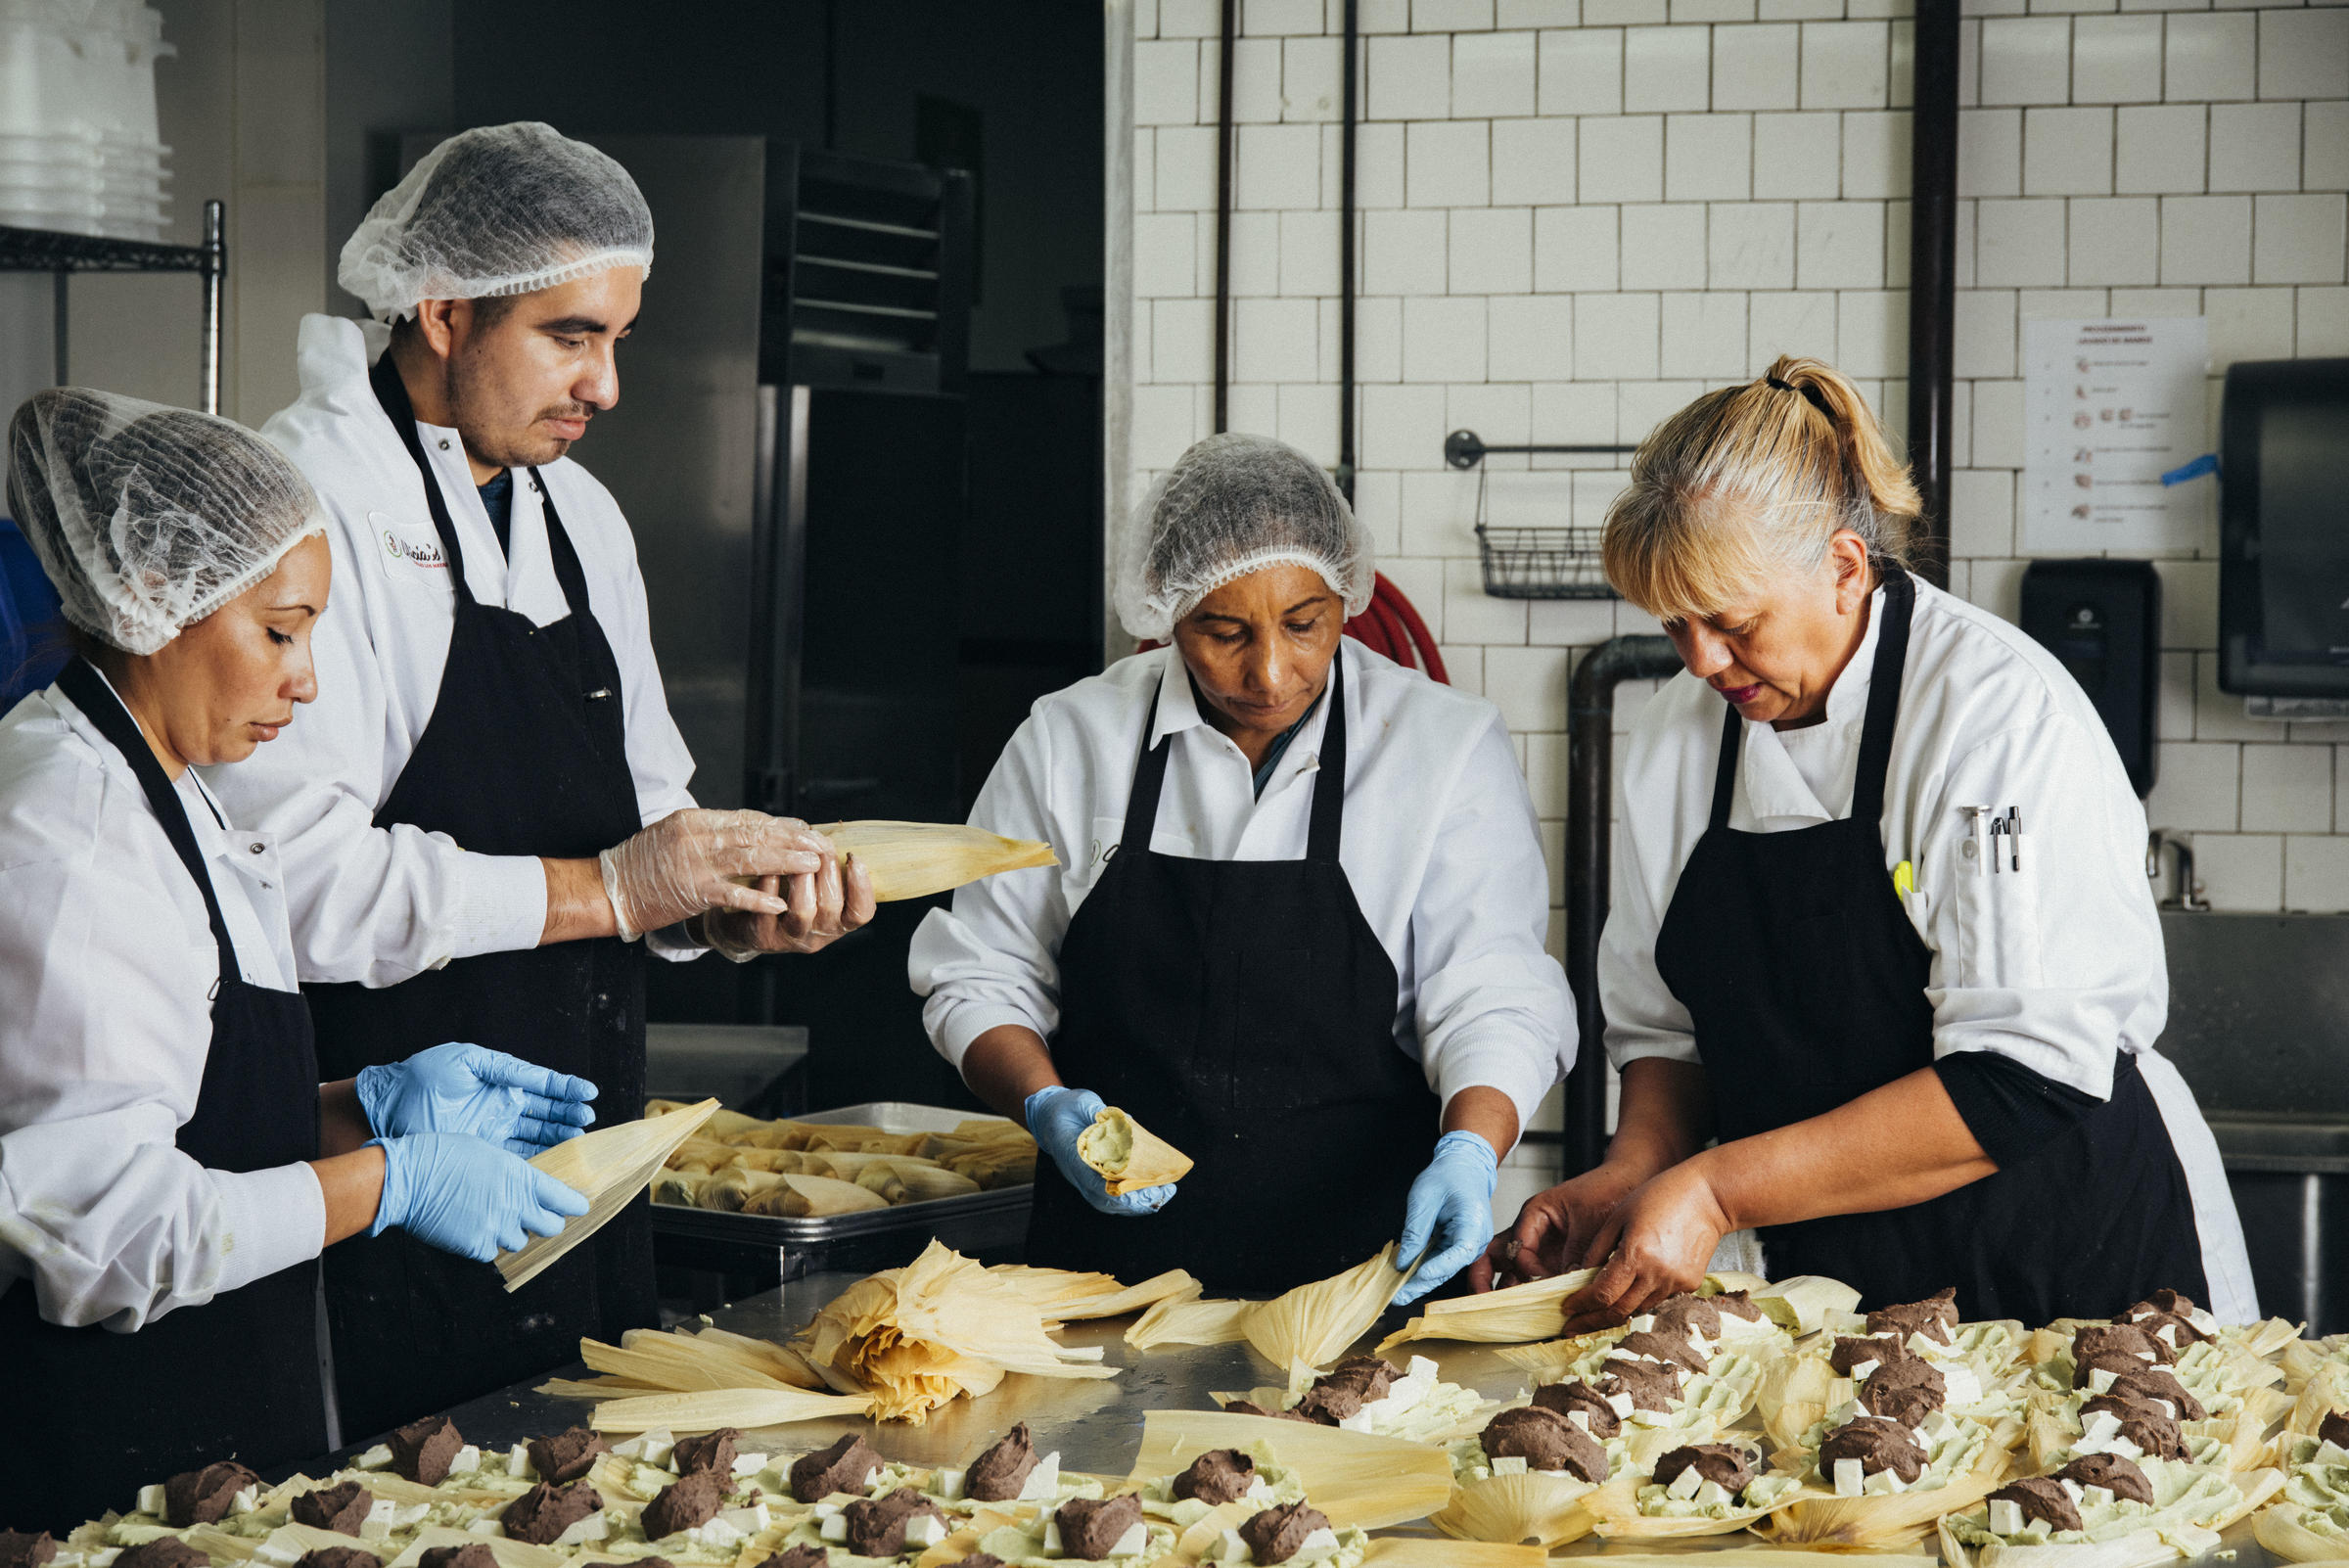 The Food Business Incubator That Helps Immigrant Women Pursue The American Dream